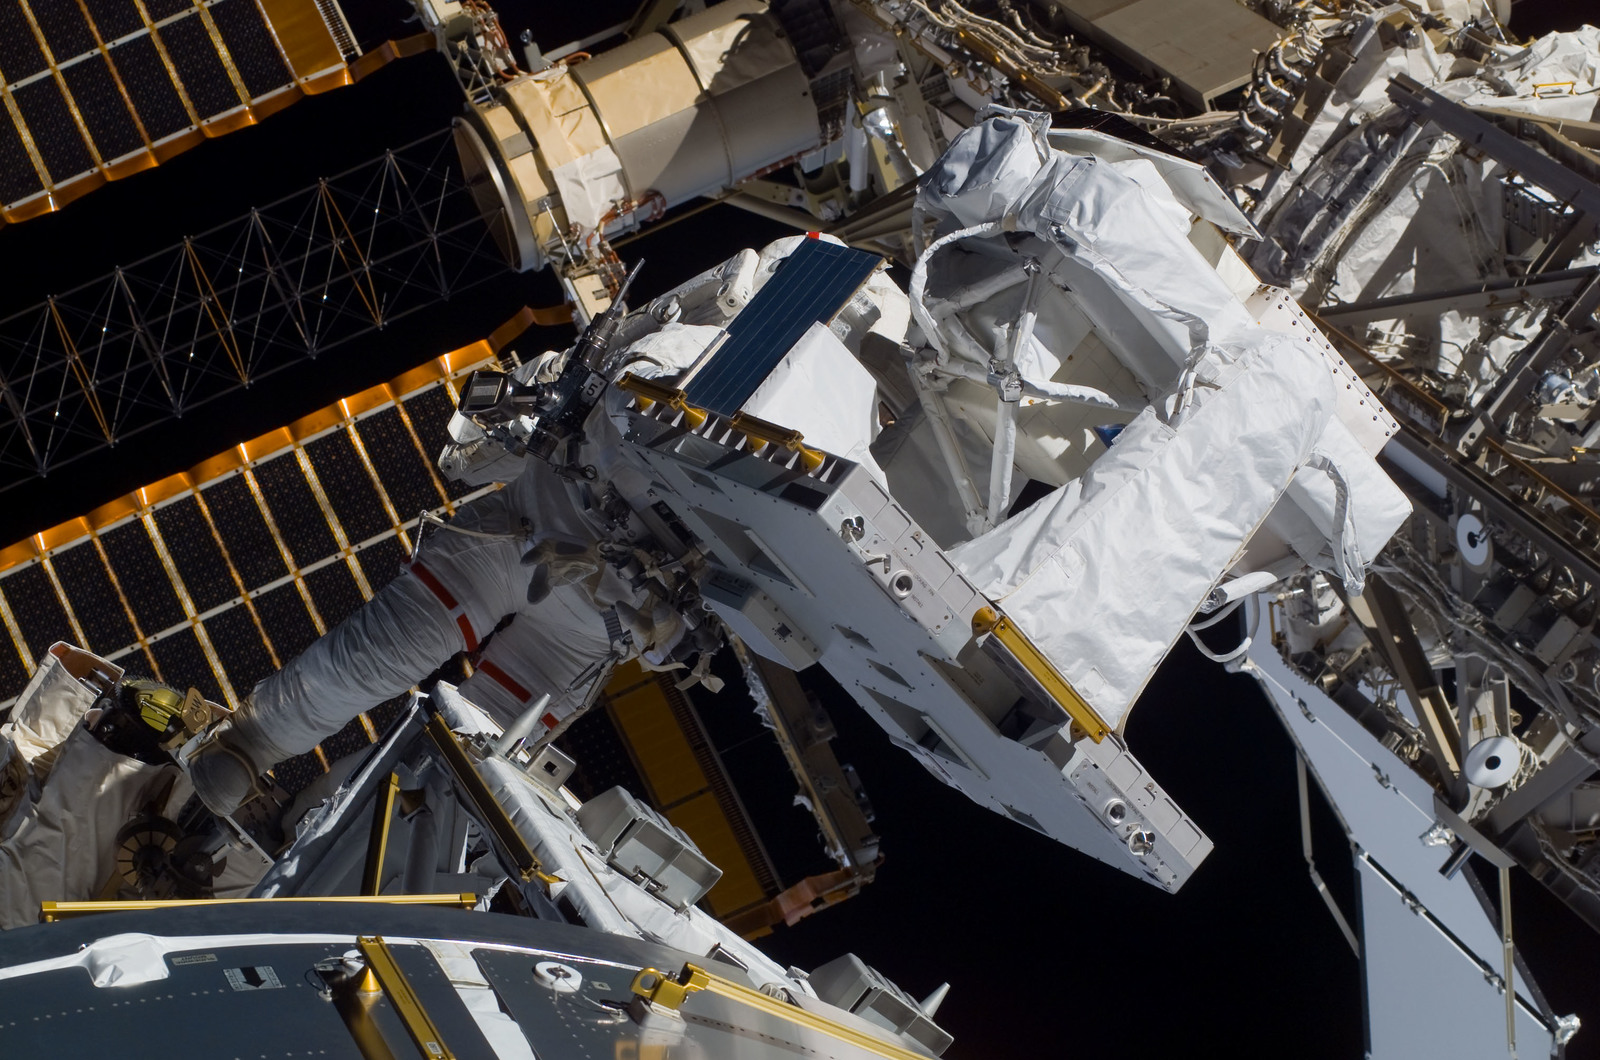 S122E008744 - STS-122 - Love during EVA 3